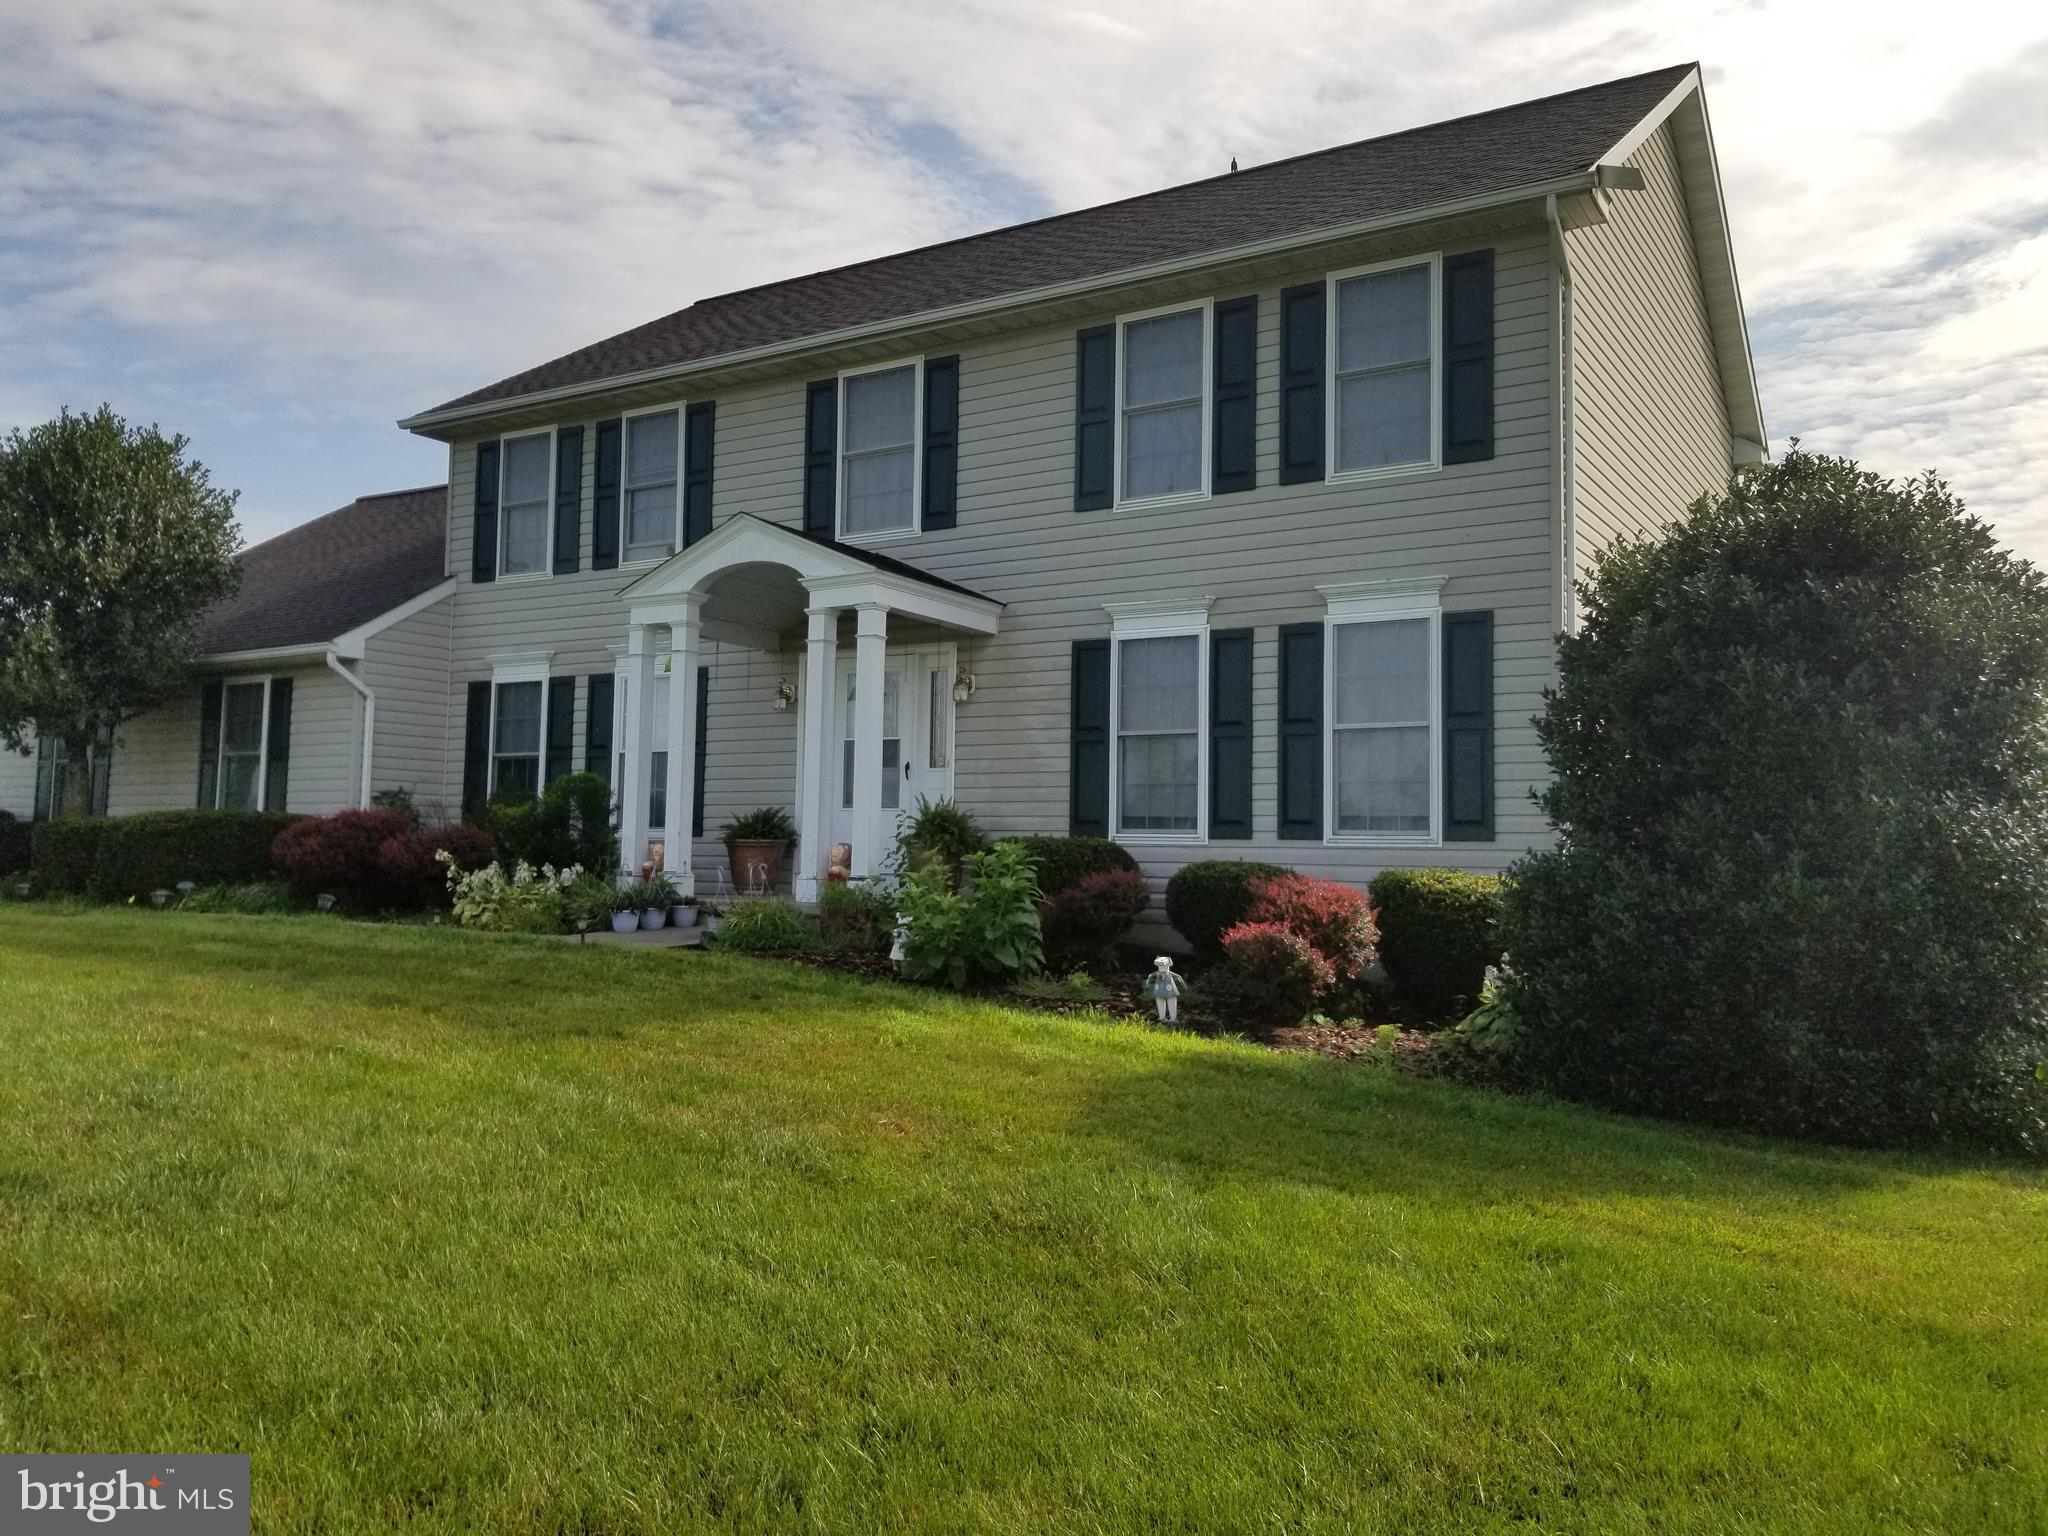 11339 Gift Road, Clear Spring, MD 21722